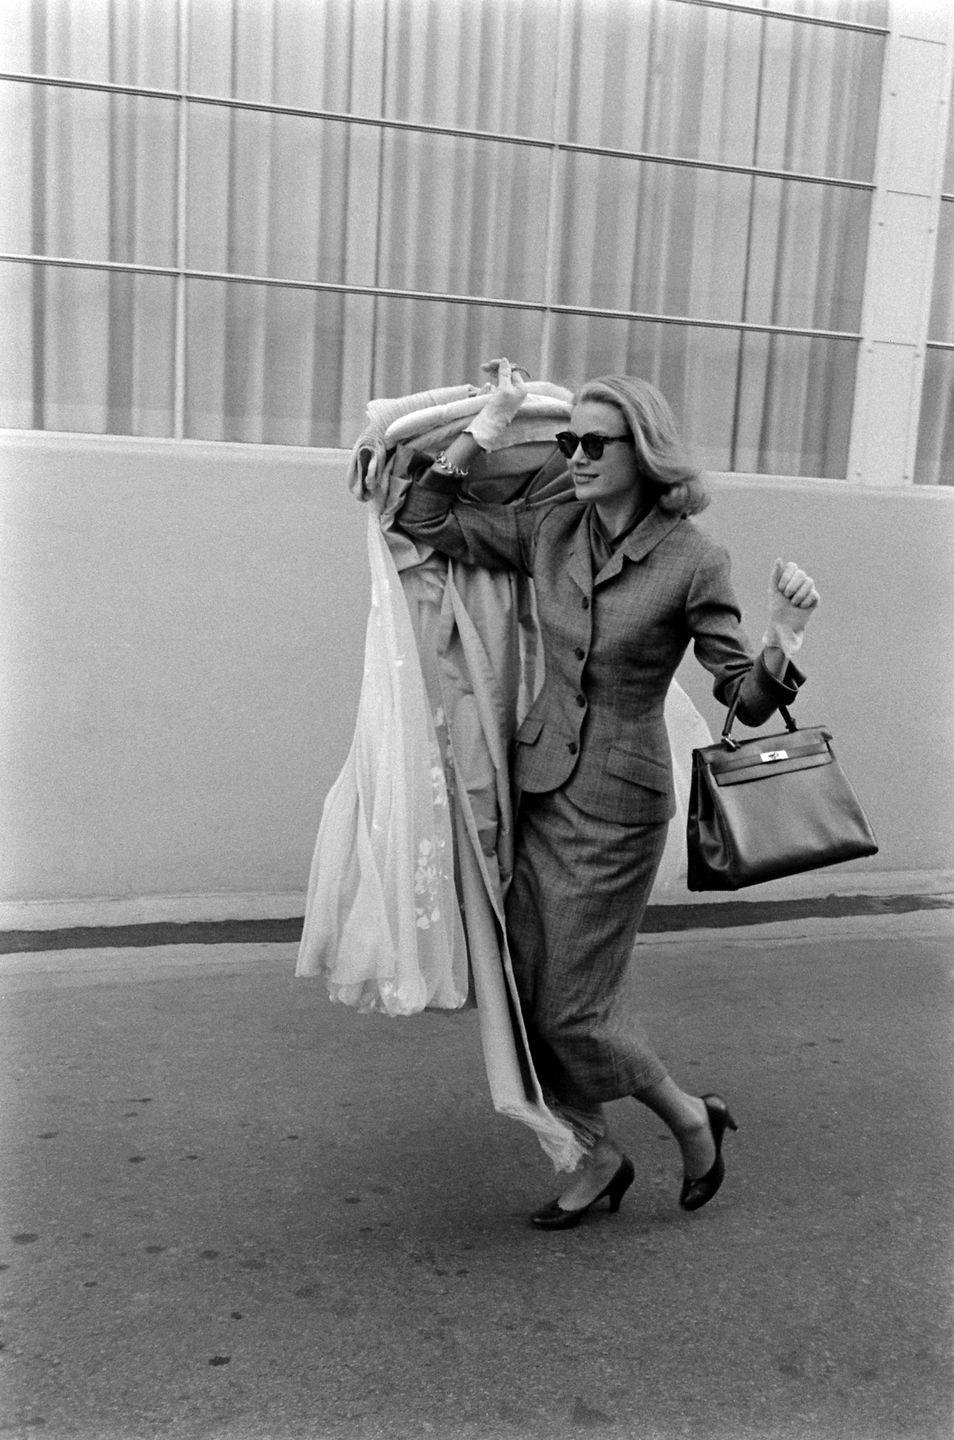 <p>At the height of her career, Kelly retired from Hollywood to take on a new role as Princess of Monaco. Here, she clears out her closet from the studio lot ahead of her upcoming nuptials in 1956. </p>